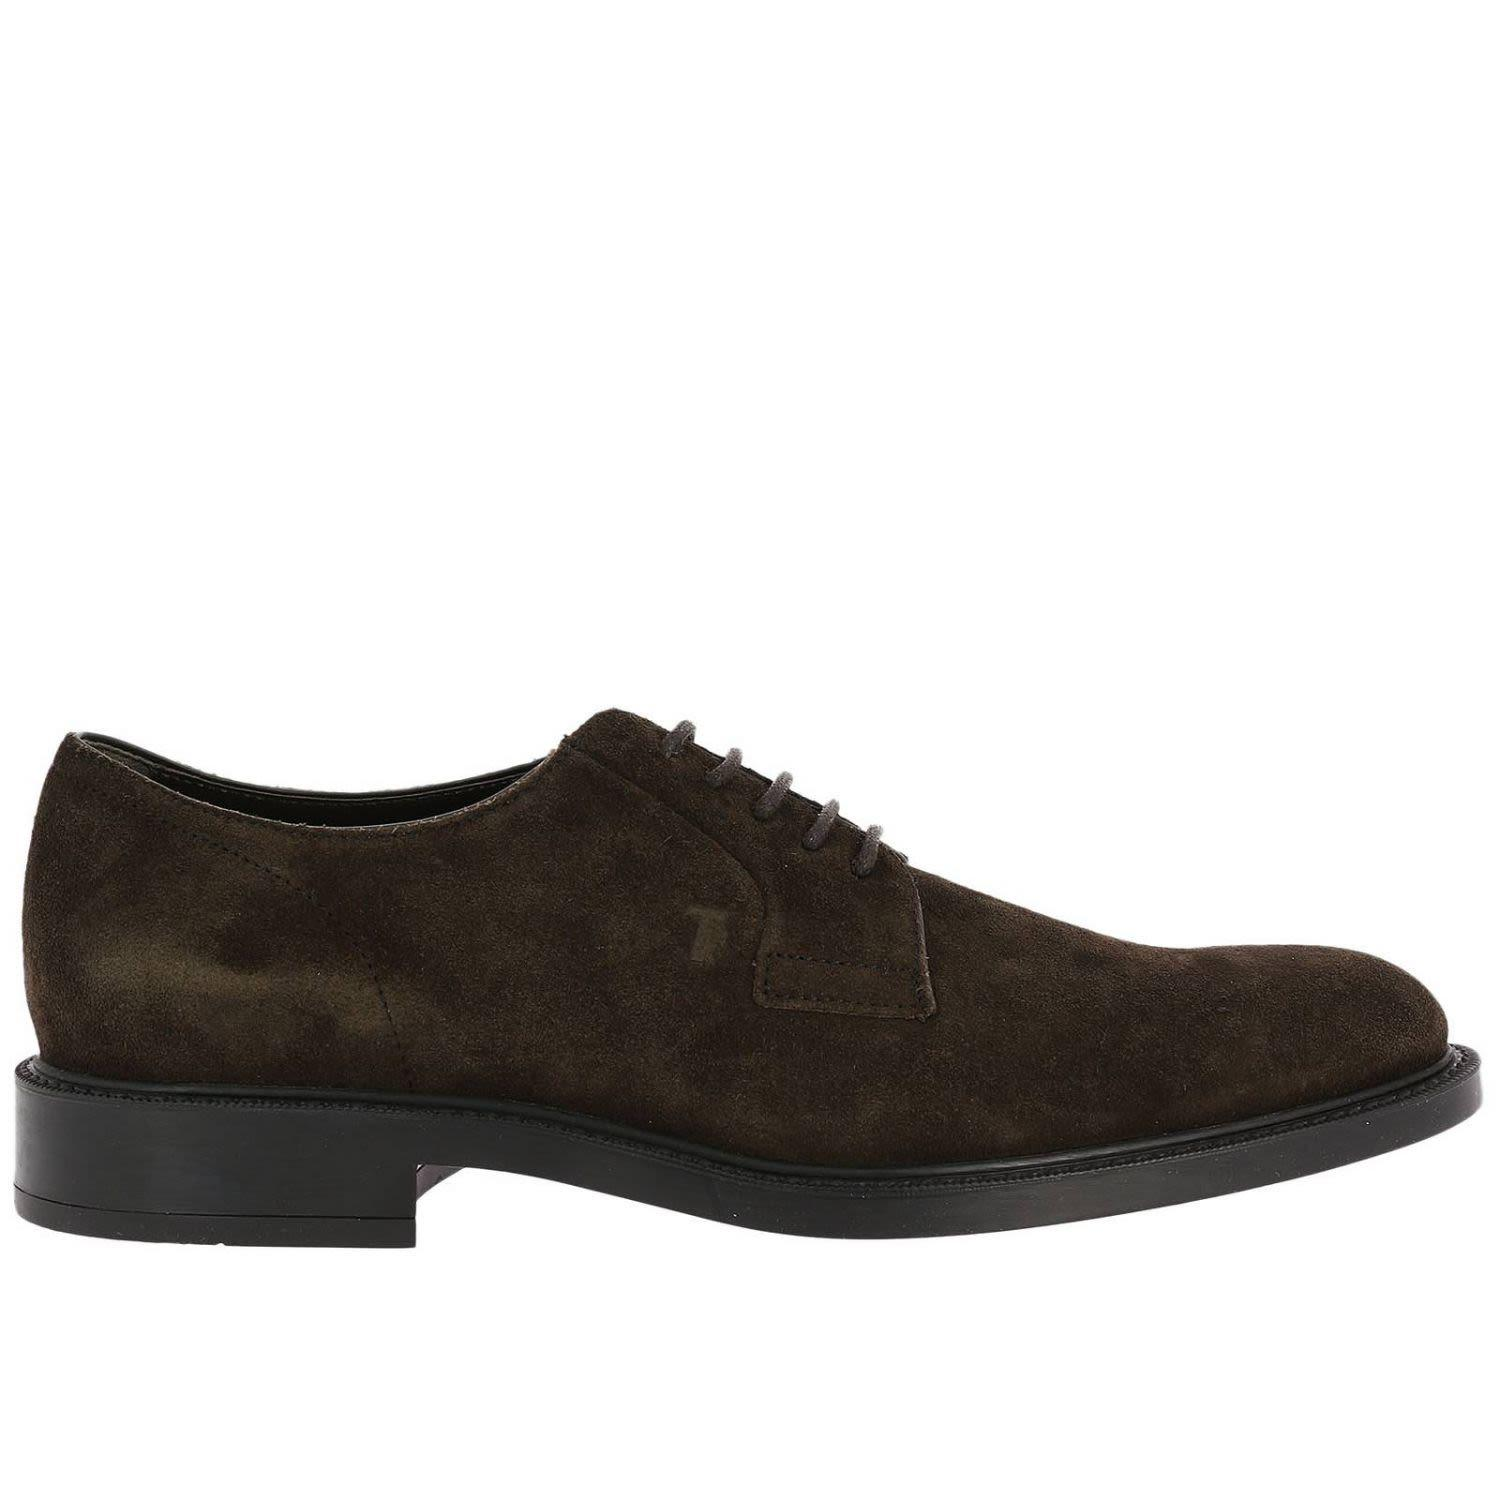 Tod's Brogue Shoes Shoes Men Tods In Brown